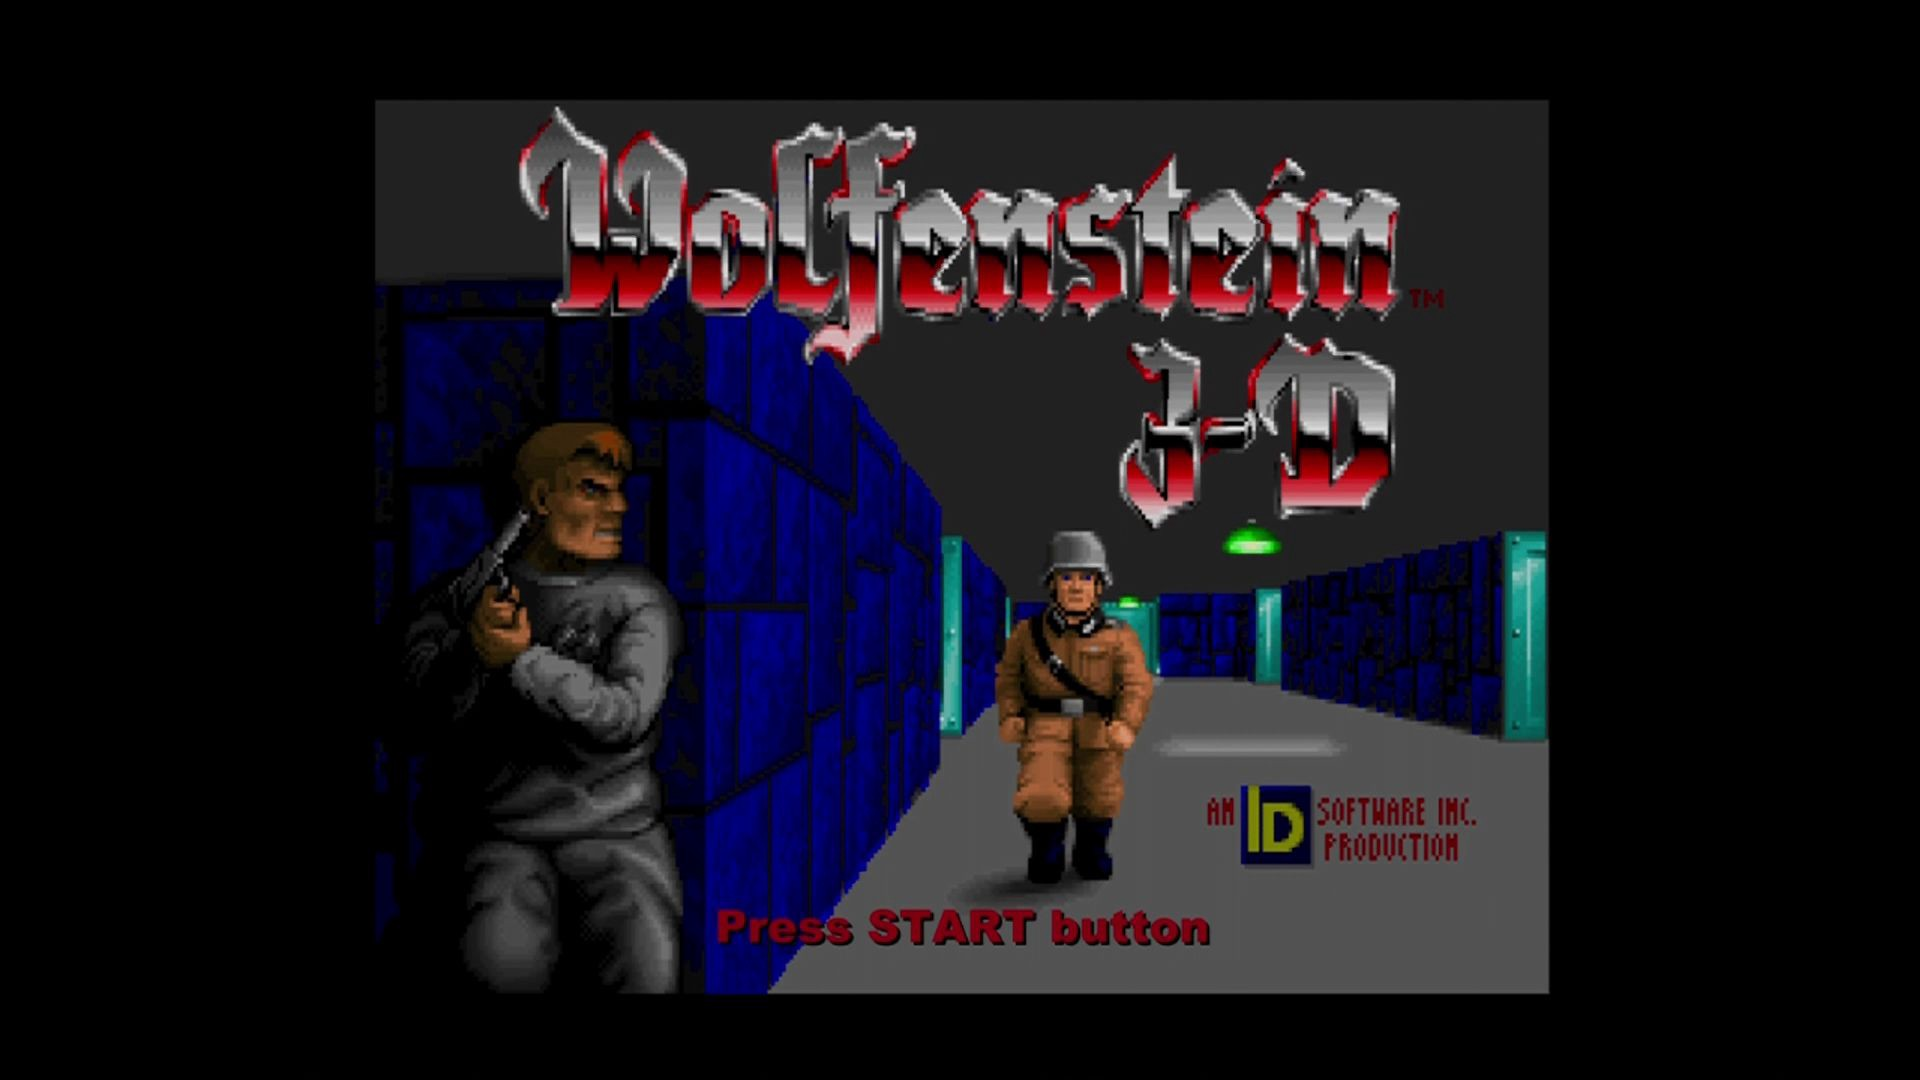 100 Days of Code: I'm going to make a Clone of Wolfenstein 3D using